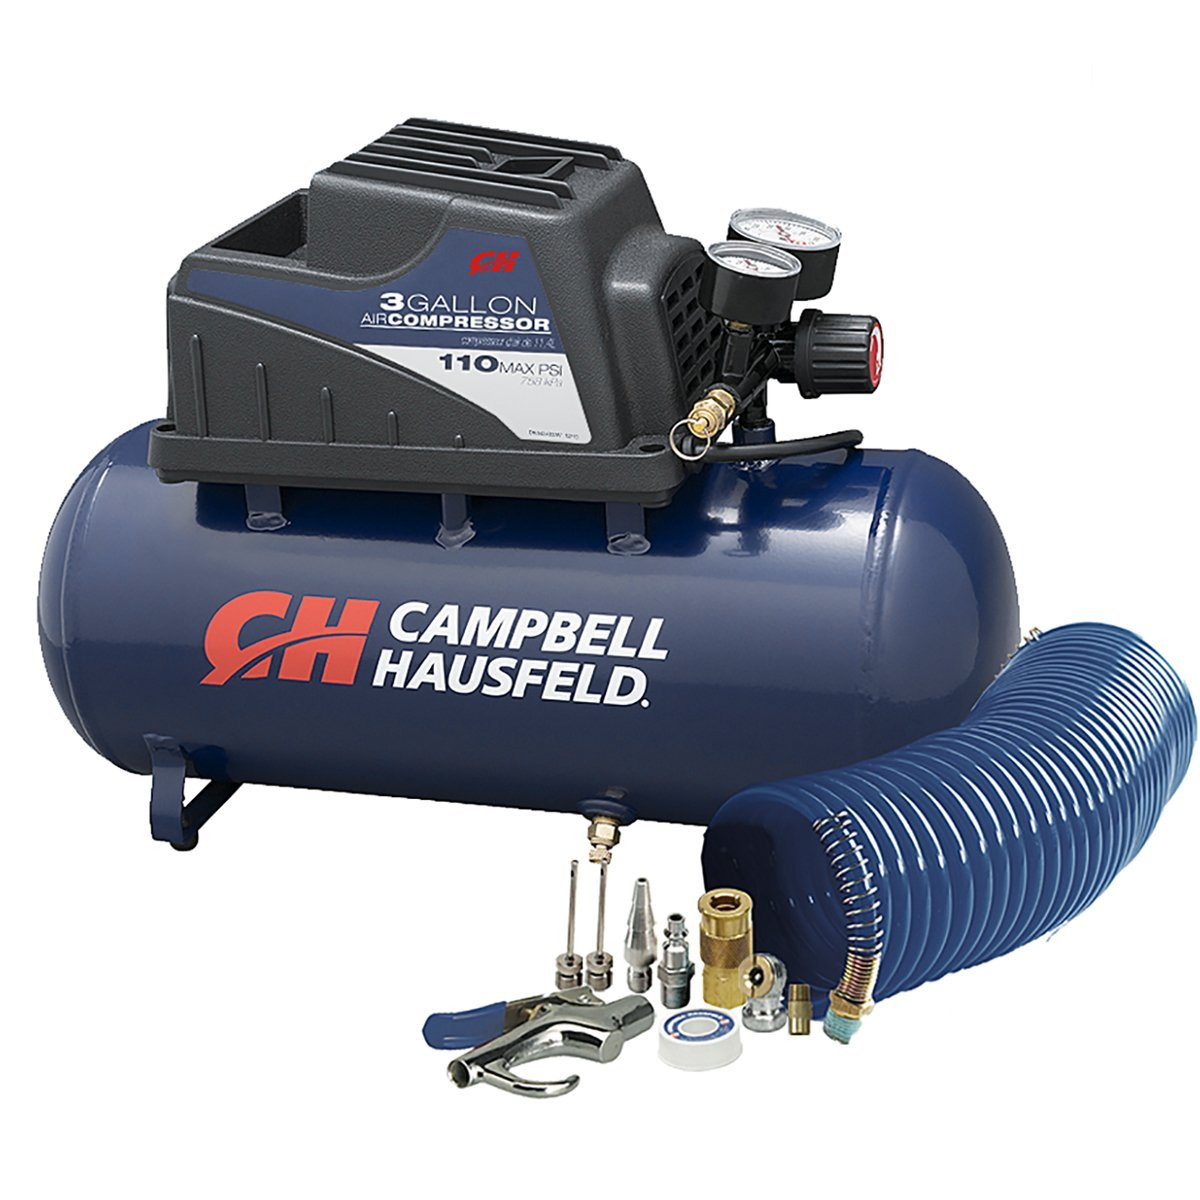 Top 5 Options for the Best Portable Air Compressor